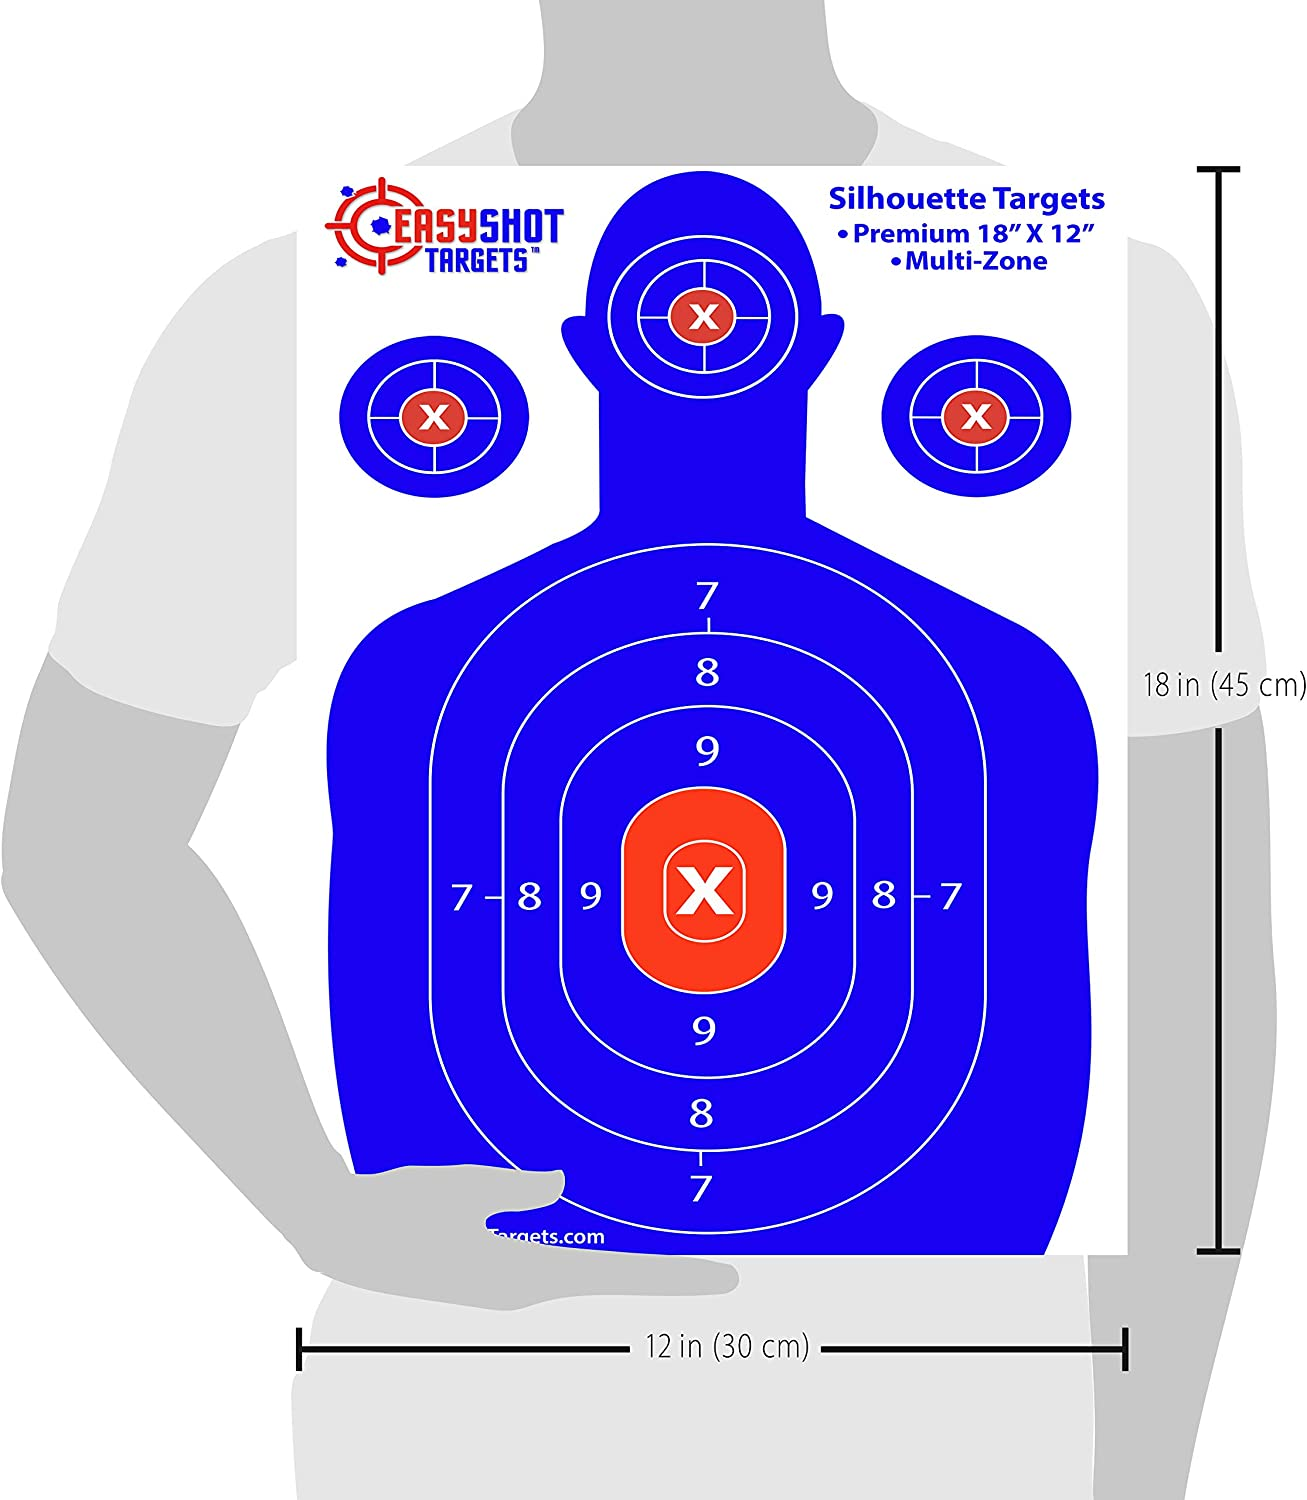 EasyShot Shooting Targets, High-Contrasting Blue & Red Colors Make it Easy to See Your Shots Land, Heavy-Duty Silhouette Targets for Shooting - 150 Free Repair Stickers Guarantee : Sports & Outdoors